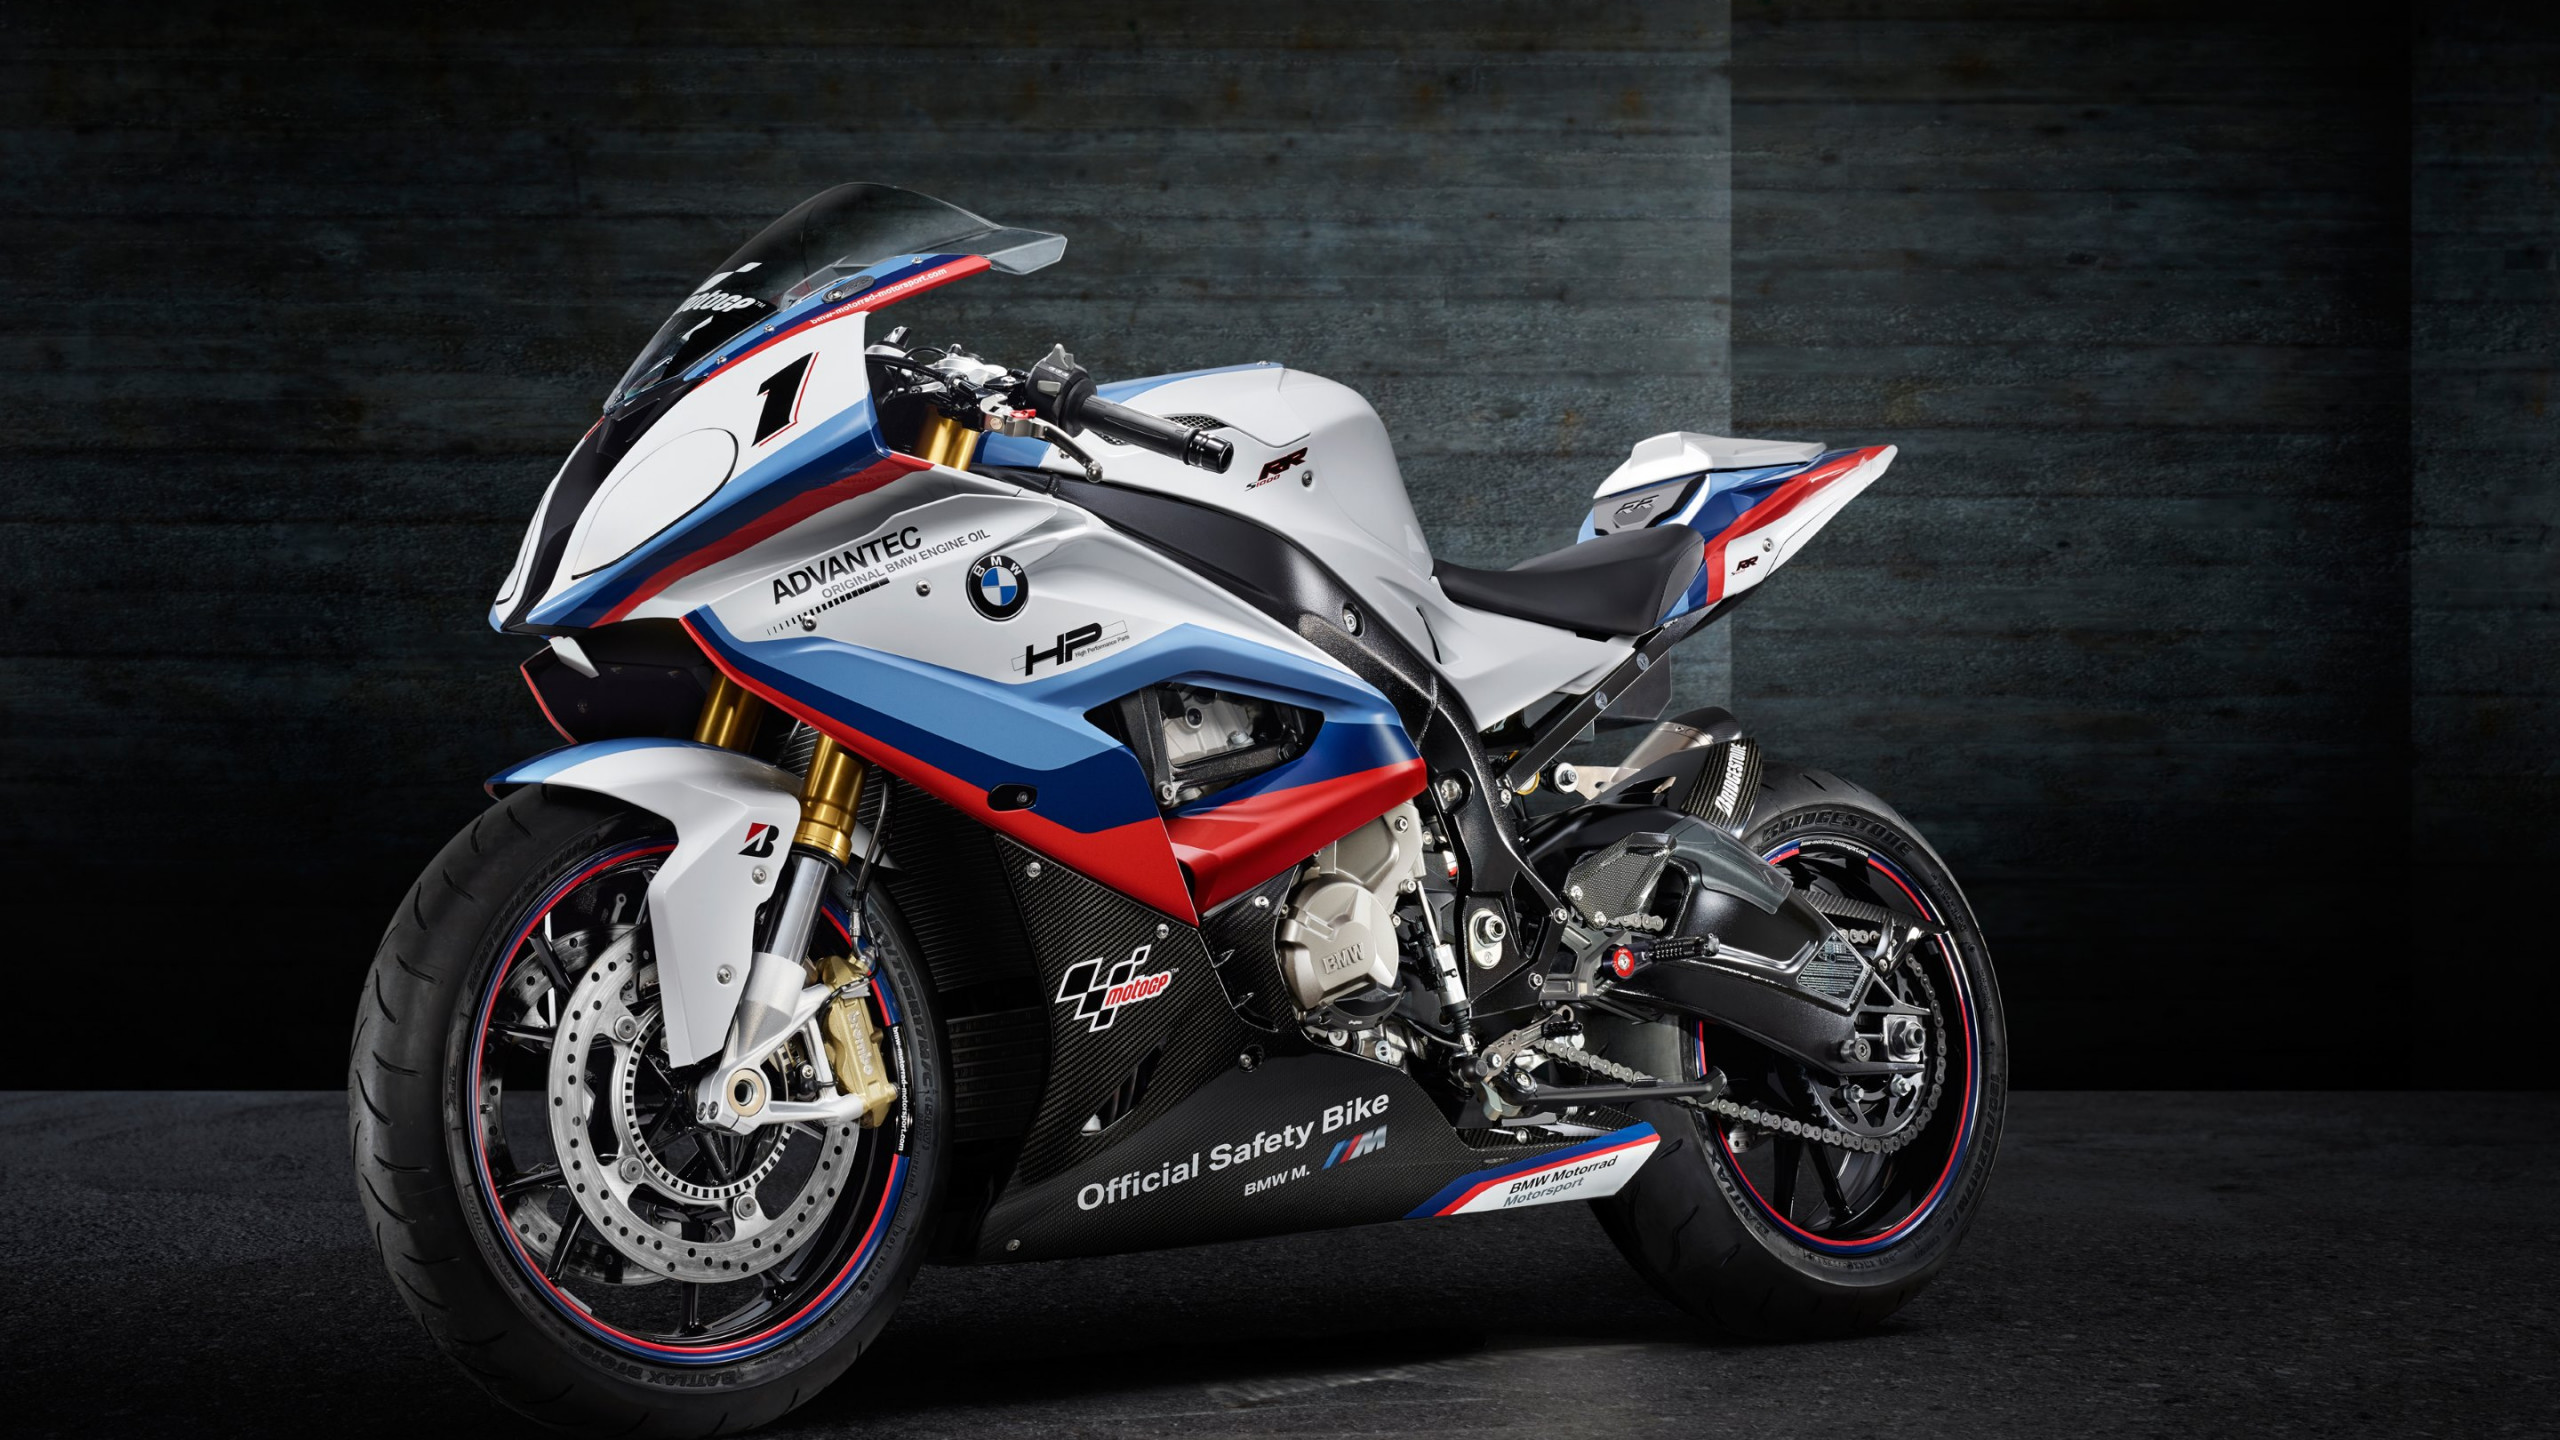 BMW S1000RR MotoGP Safety Motorcycle | 2560x1440 wallpaper